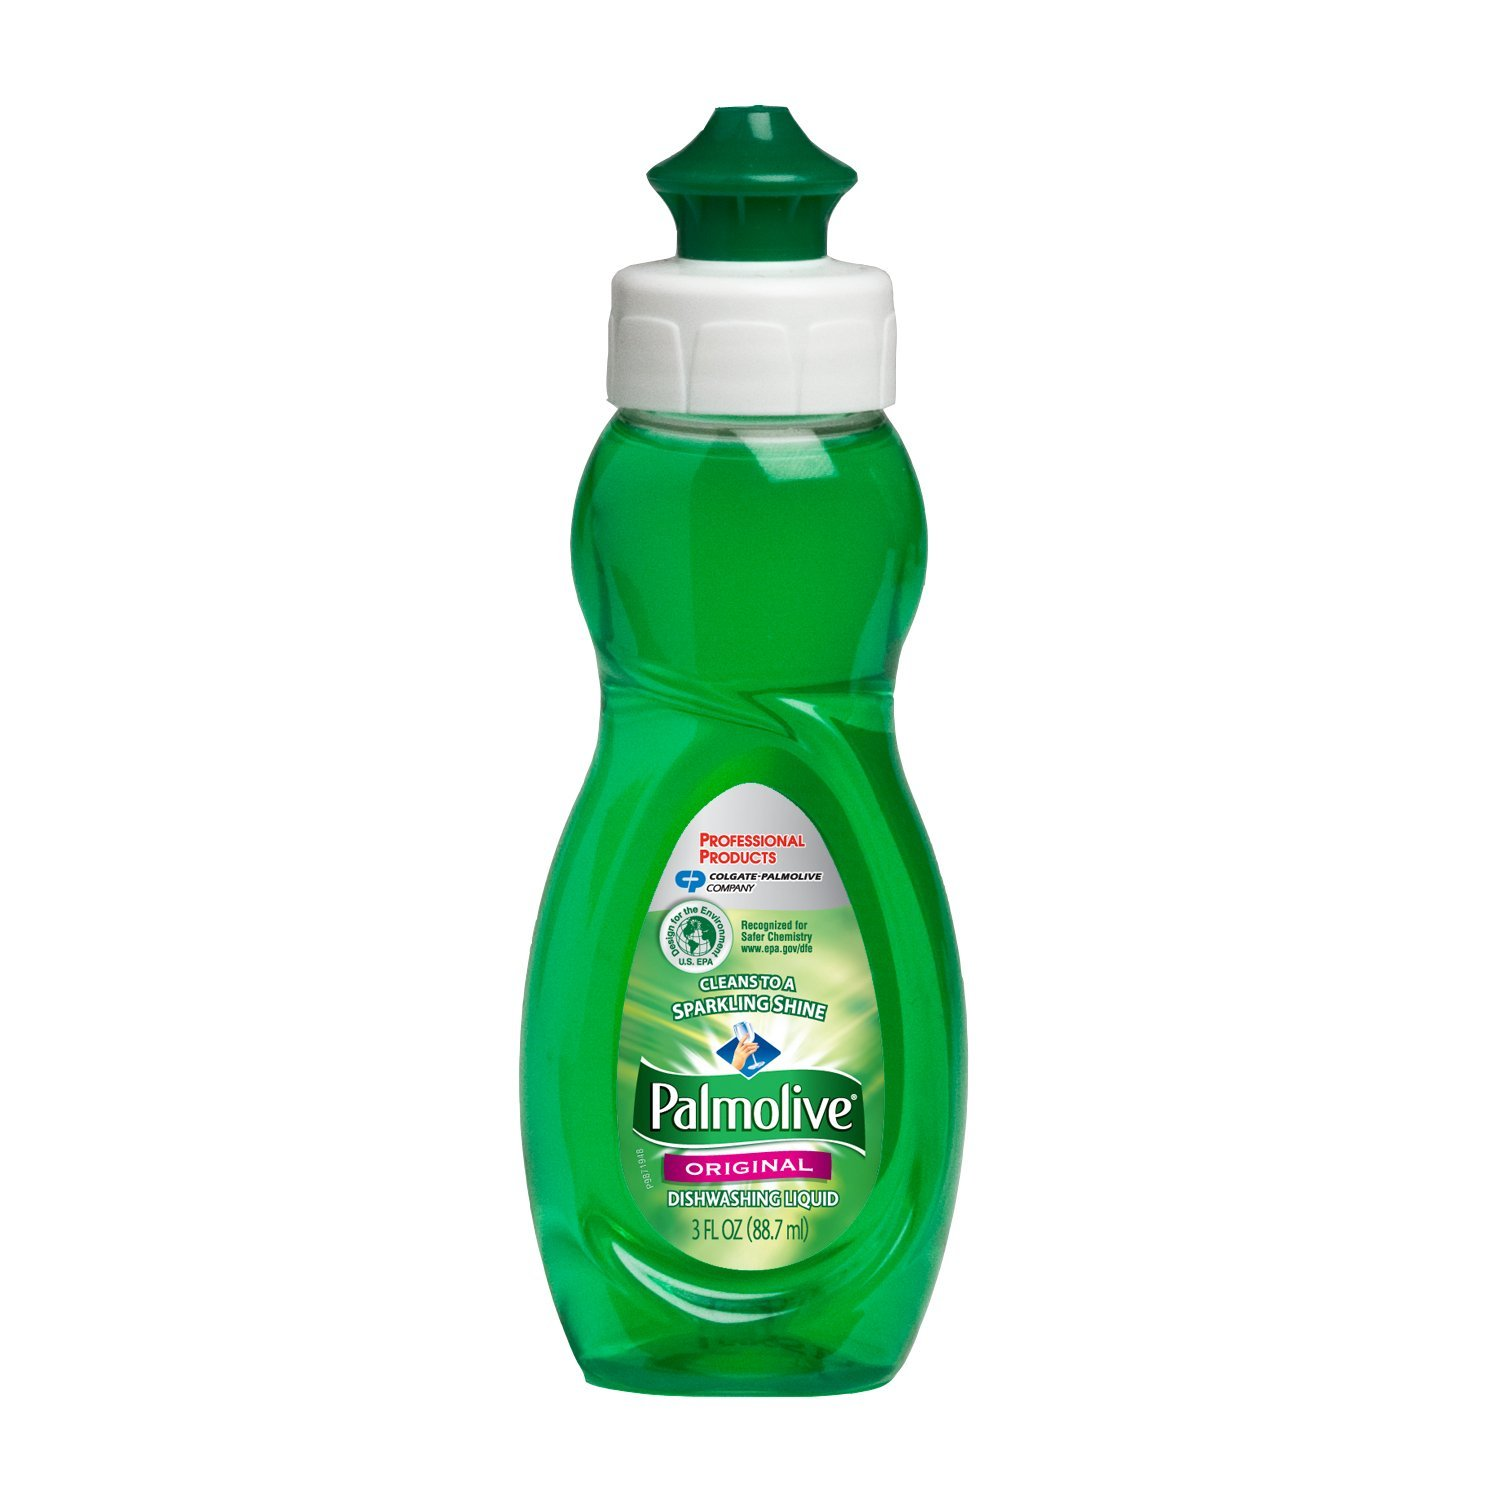 Colgate/Palmolive Green 3oz Palmolive Liquid      Manual Dishwashing Liquid 01417